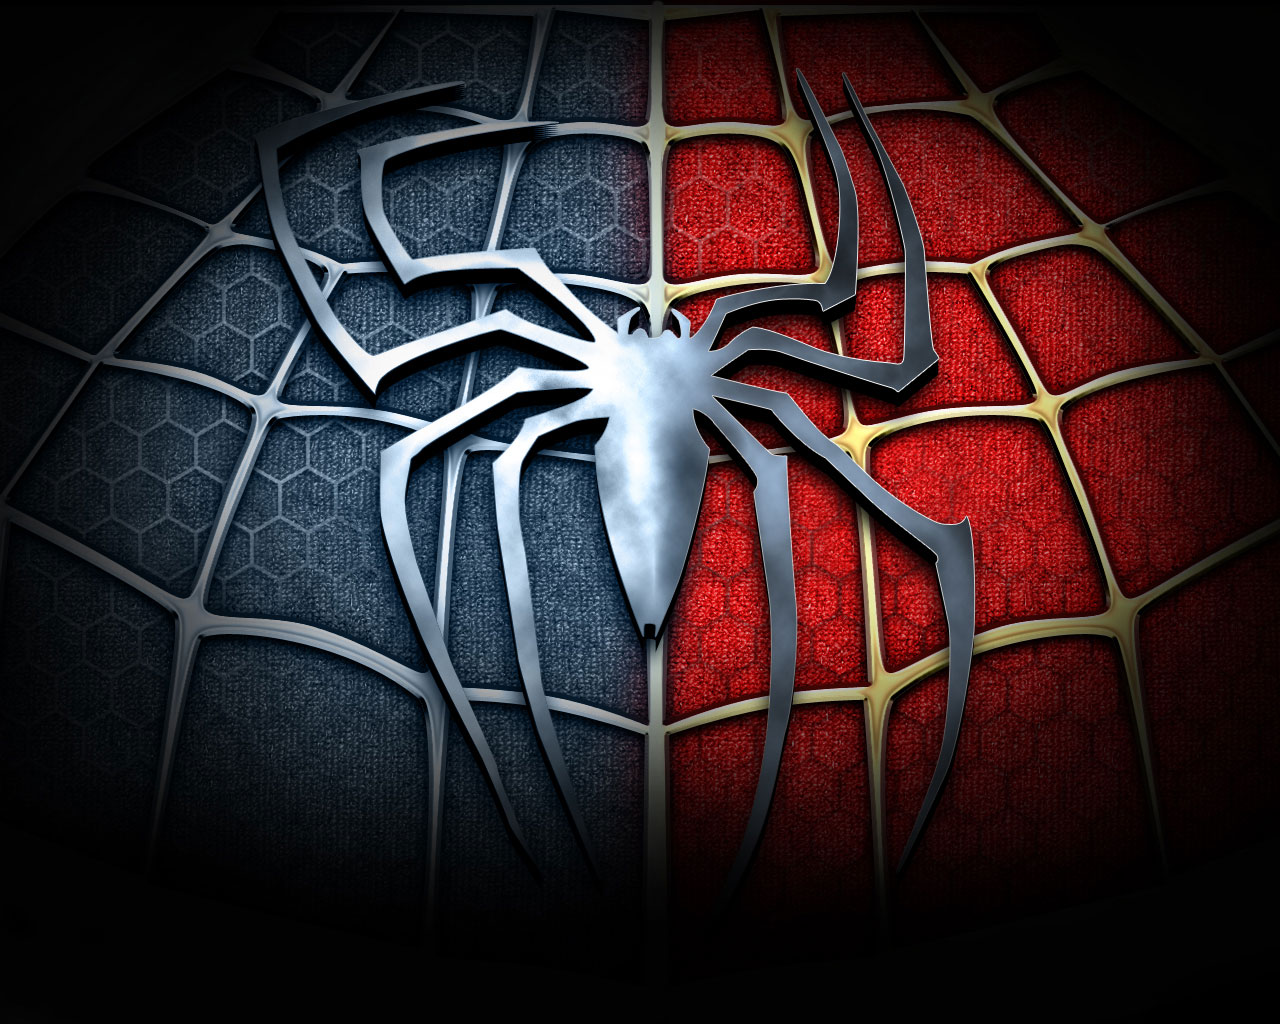 spider man logos spiderman desktop 1280x1024 hd wallpaper 910577jpg 1280x1024